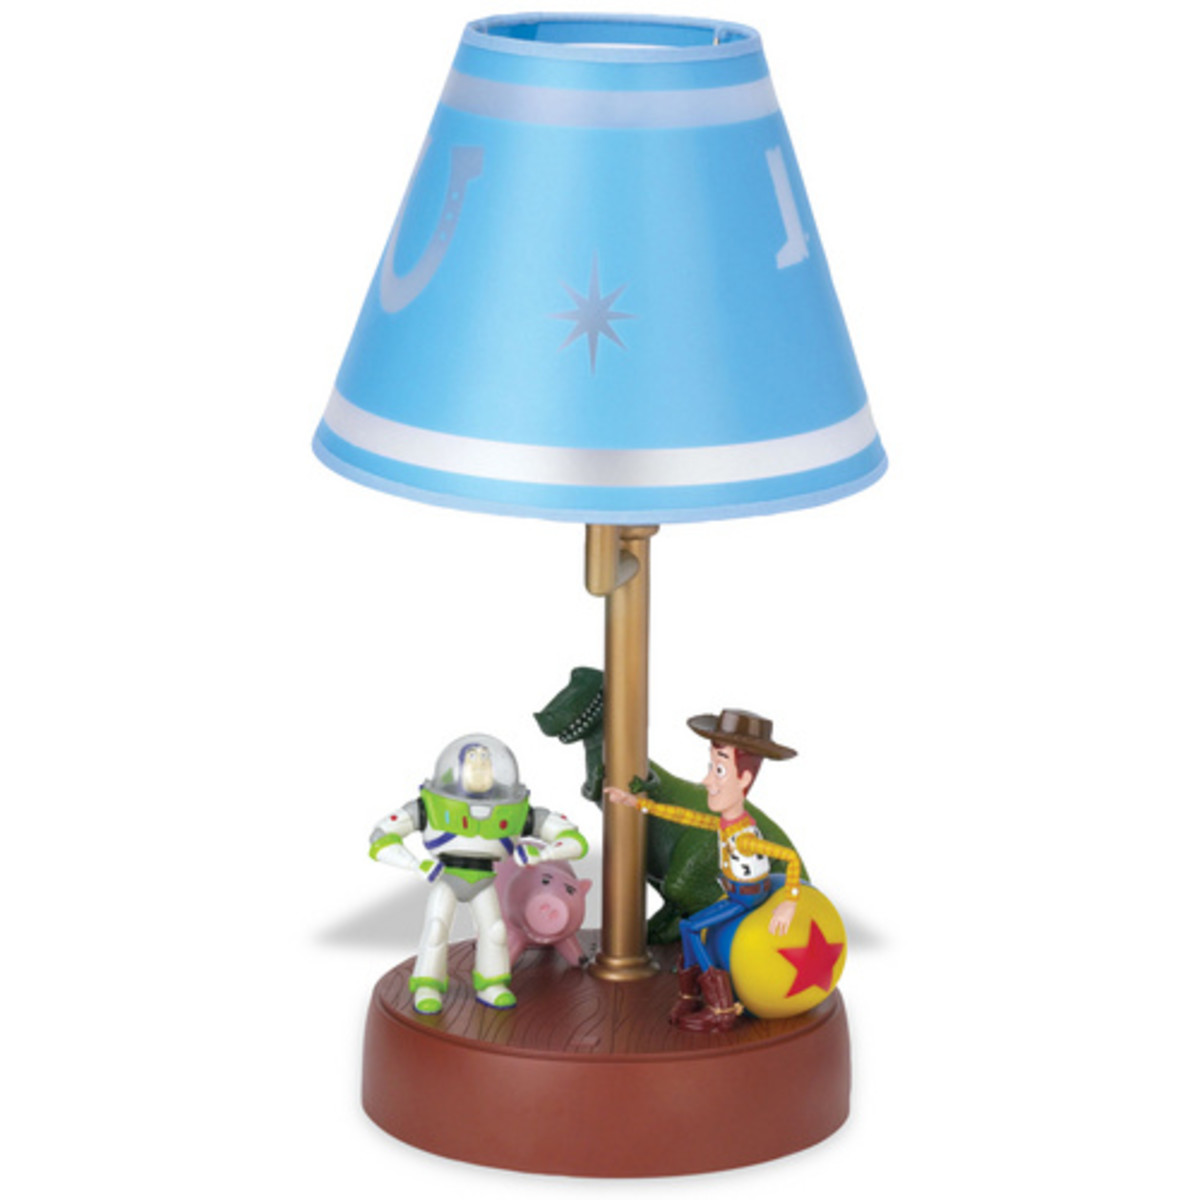 Toy Story Animated Lamp